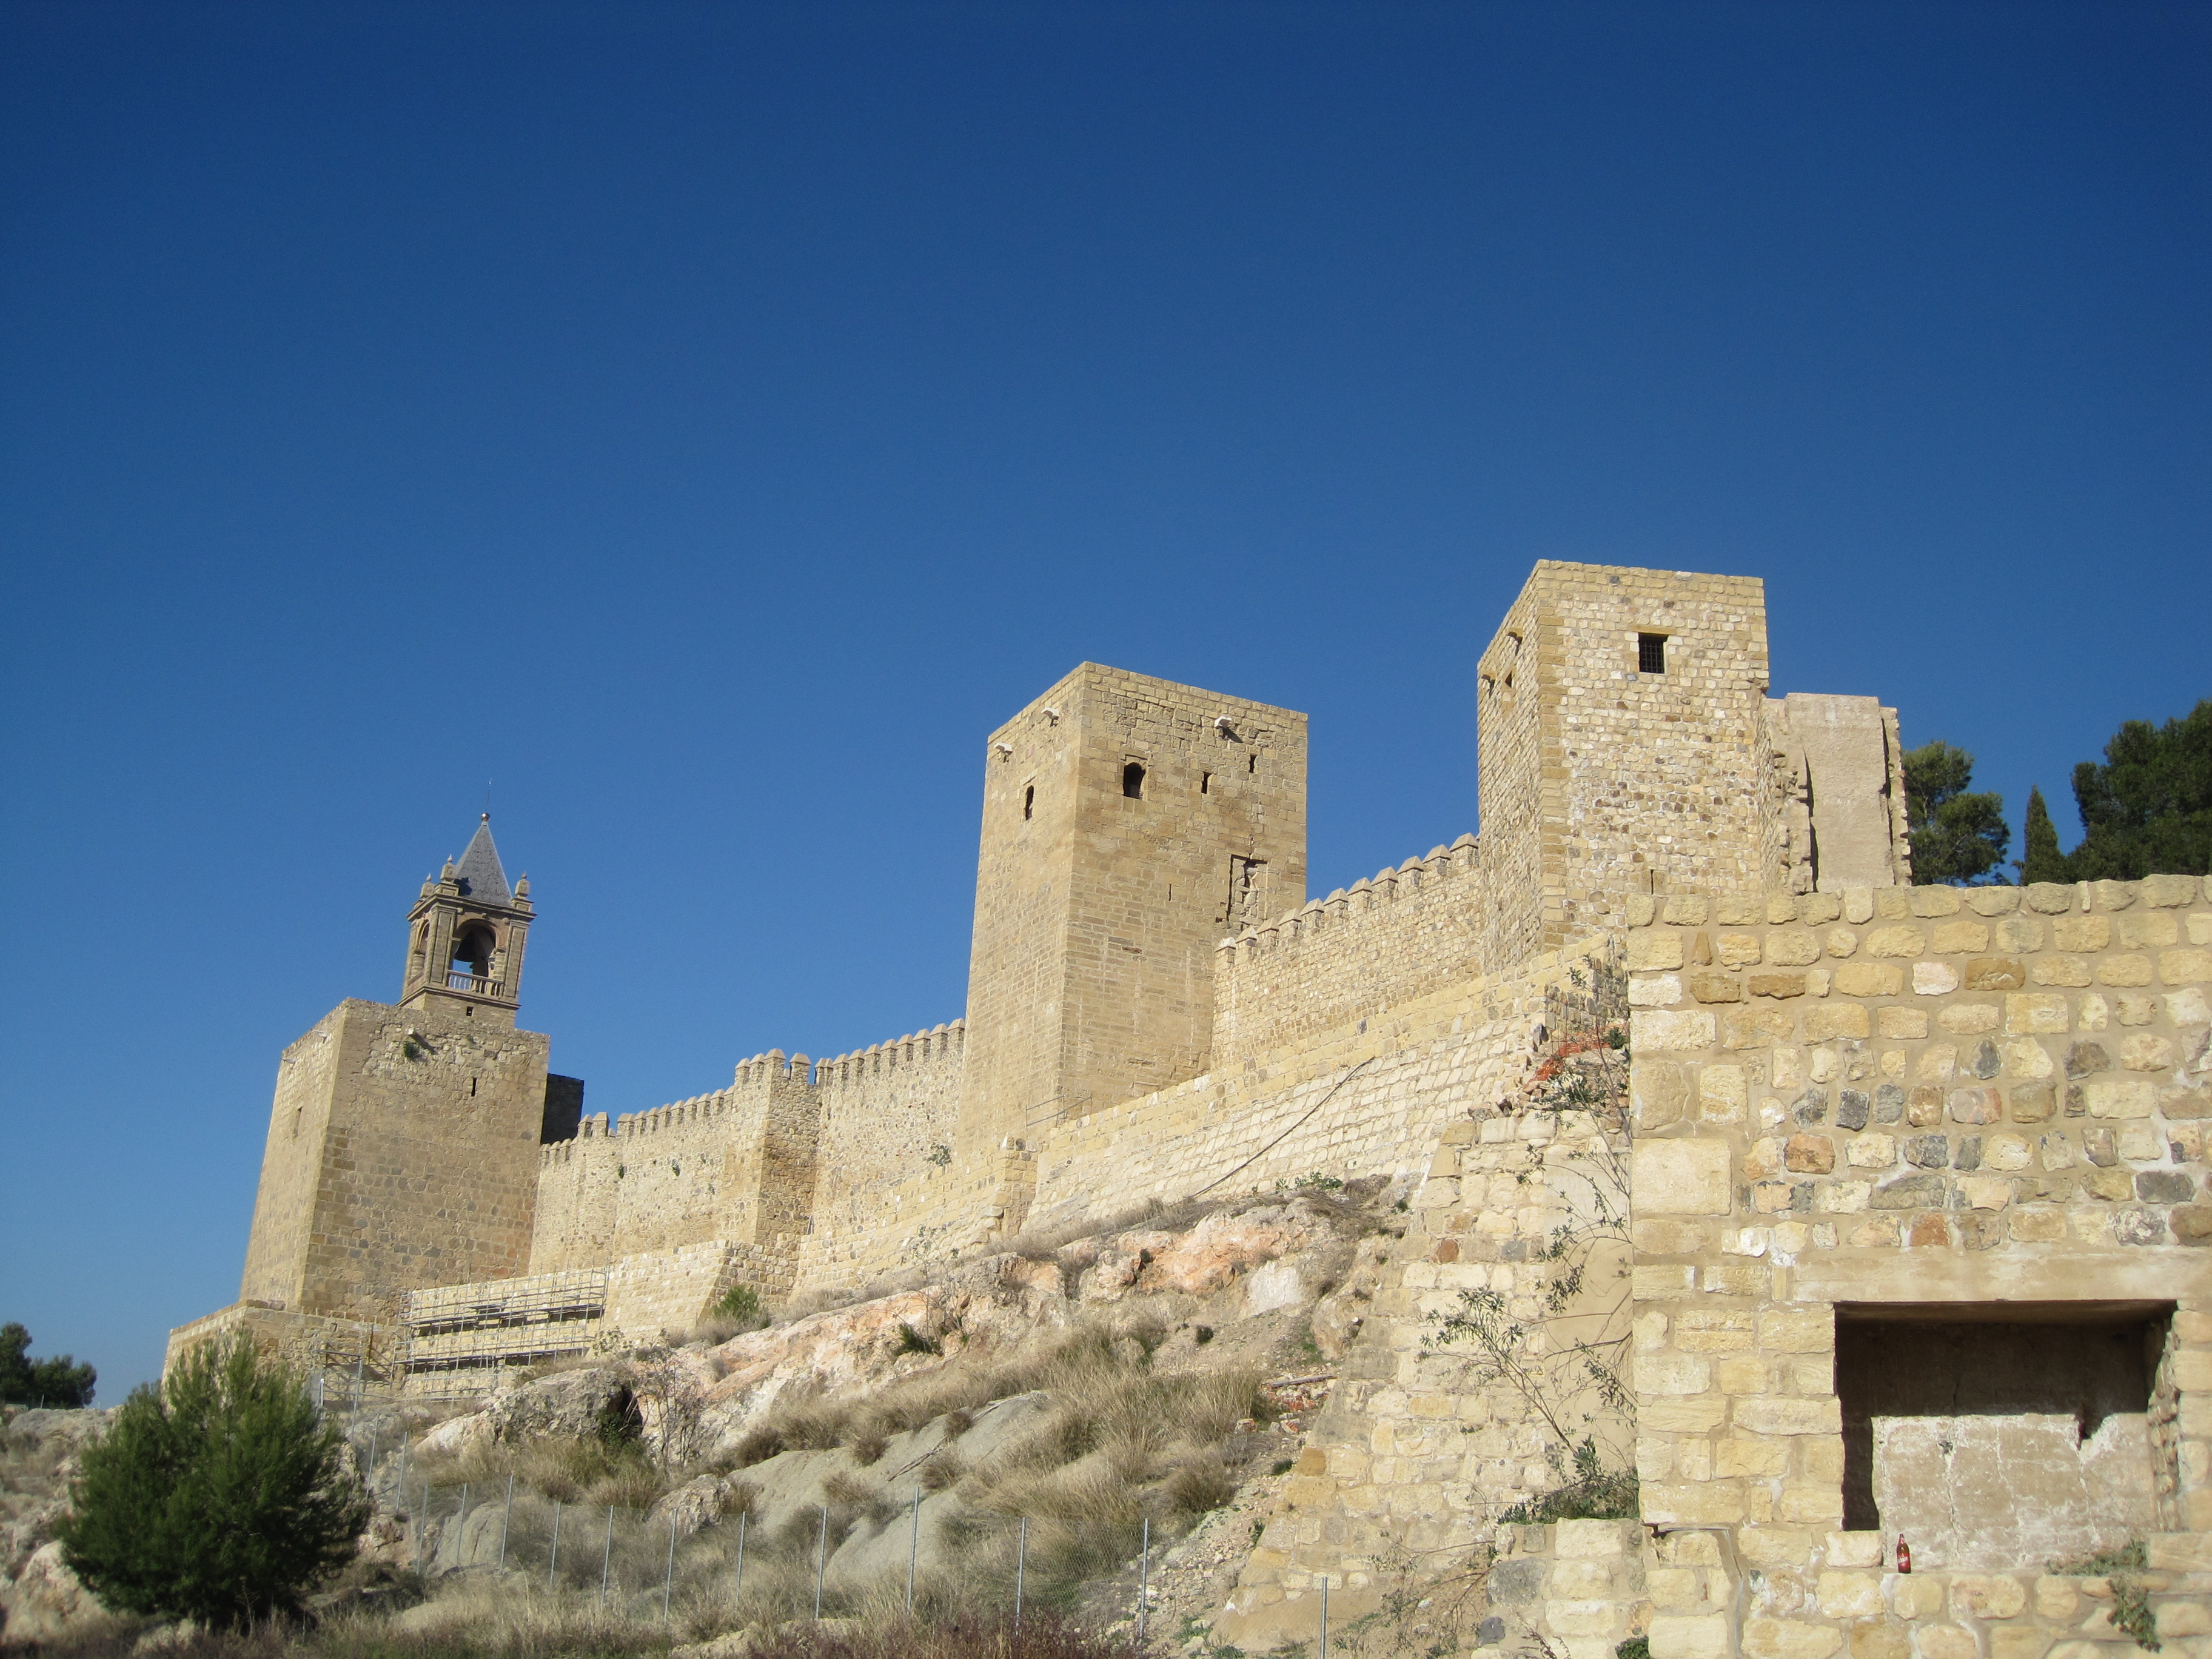 Antequera Spain  city images : Castle towers, Antequera, Spain Wikimedia Commons